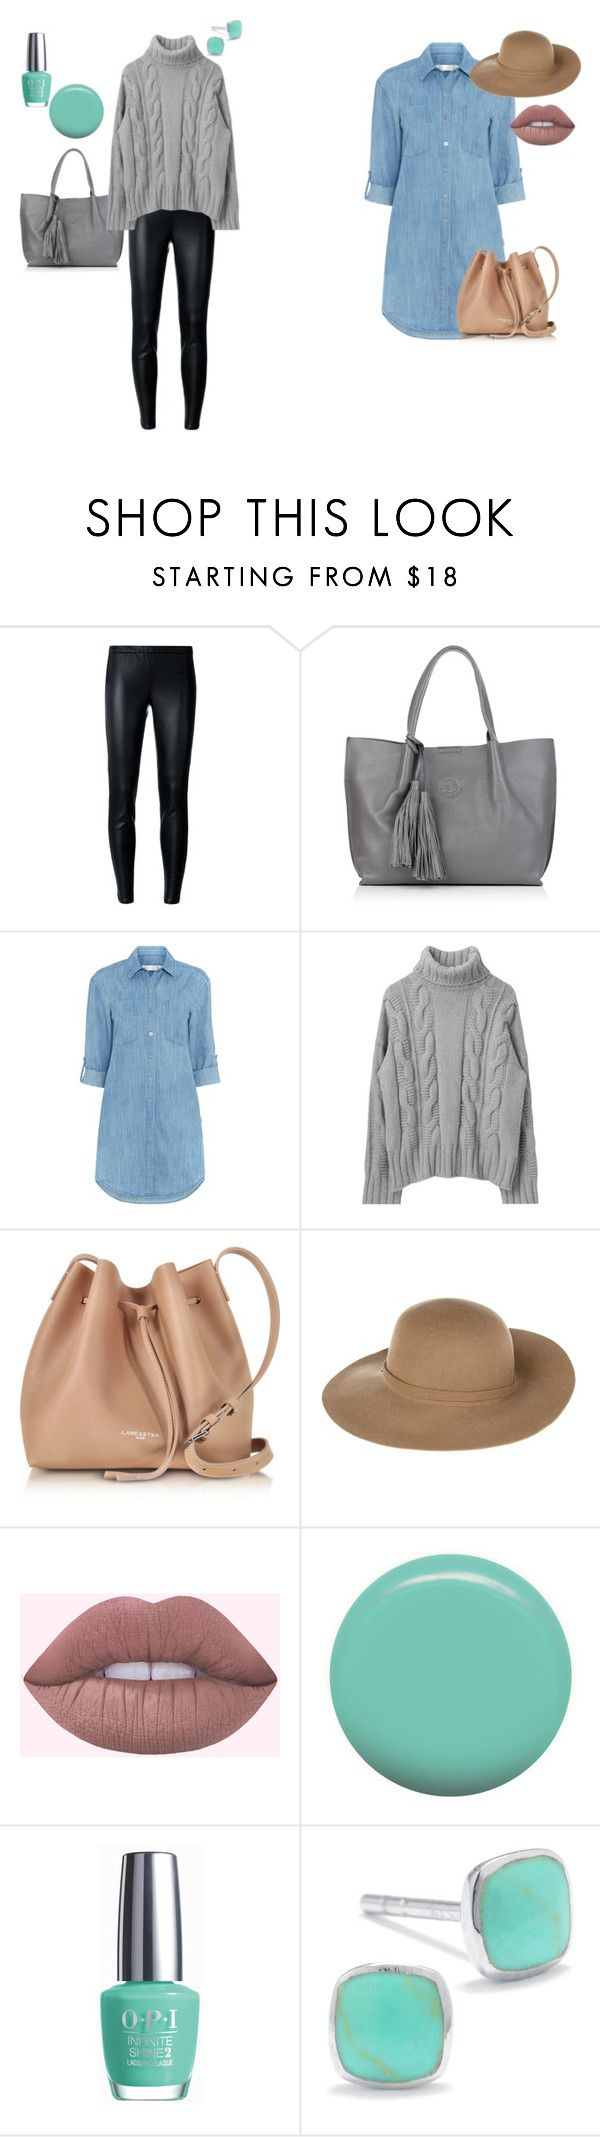 """Para tenis menta"" by zoilashopper on Polyvore featuring moda, MICHAEL Michael Kors, Nadia Minkoff, Seafolly, Lancaster, Armani Jeans, Jin Soon, OPI y Silver Treasures"